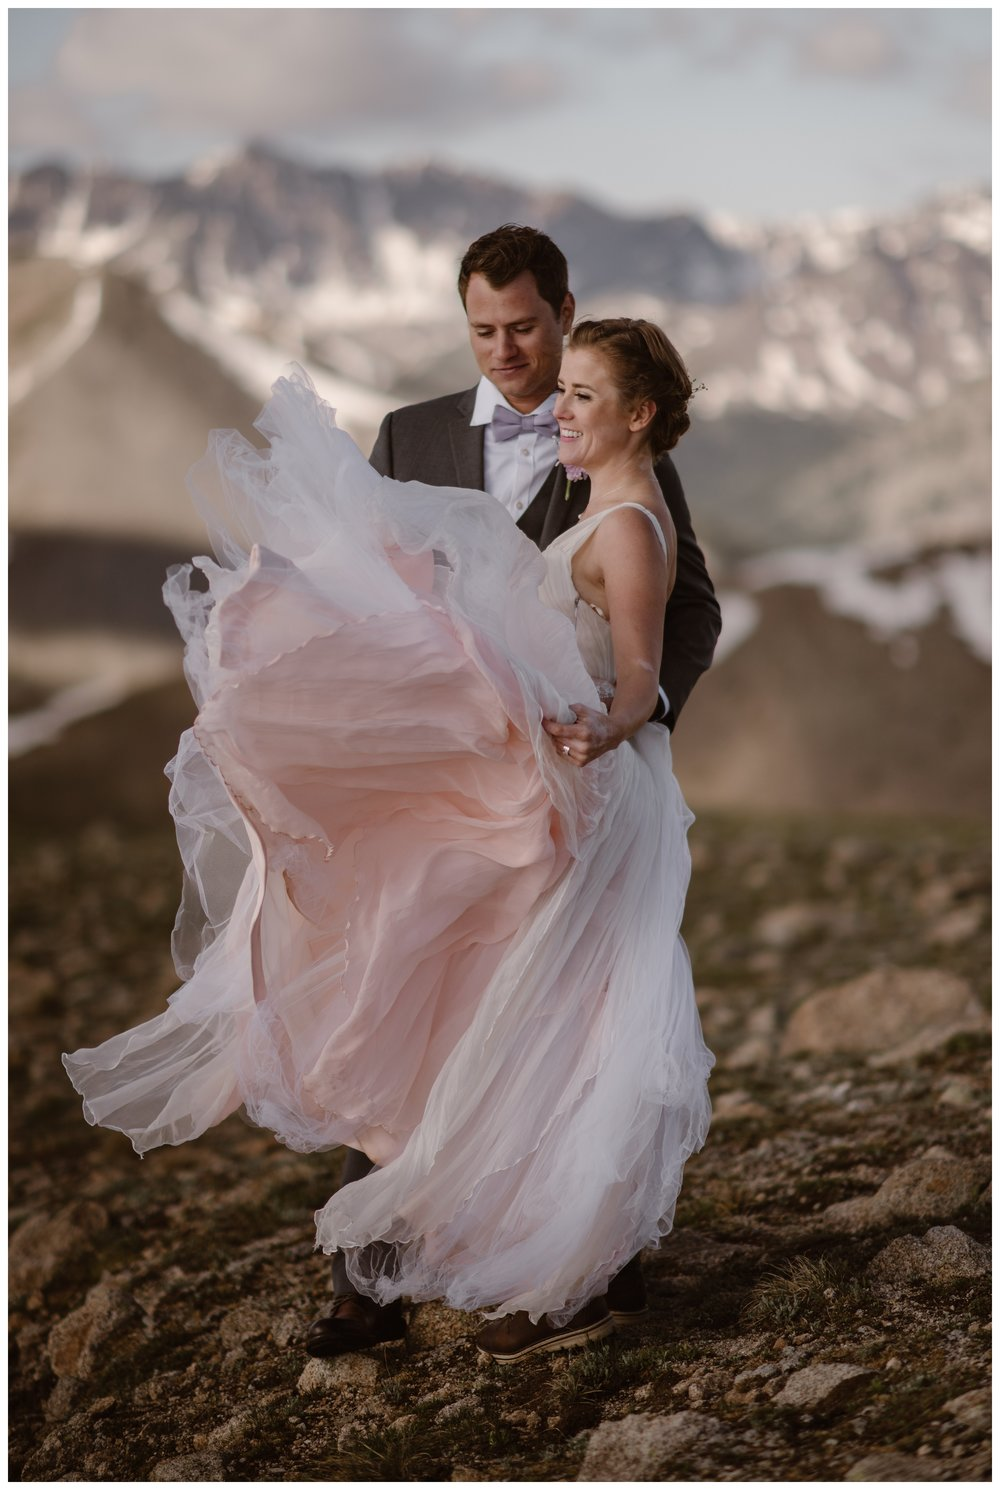 Marcela twirls her blush colored wedding dress with the jagged peaks of the Sawatch Range behind her after her elopement ceremony. Photo by Maddie Mae, Adventure Instead.